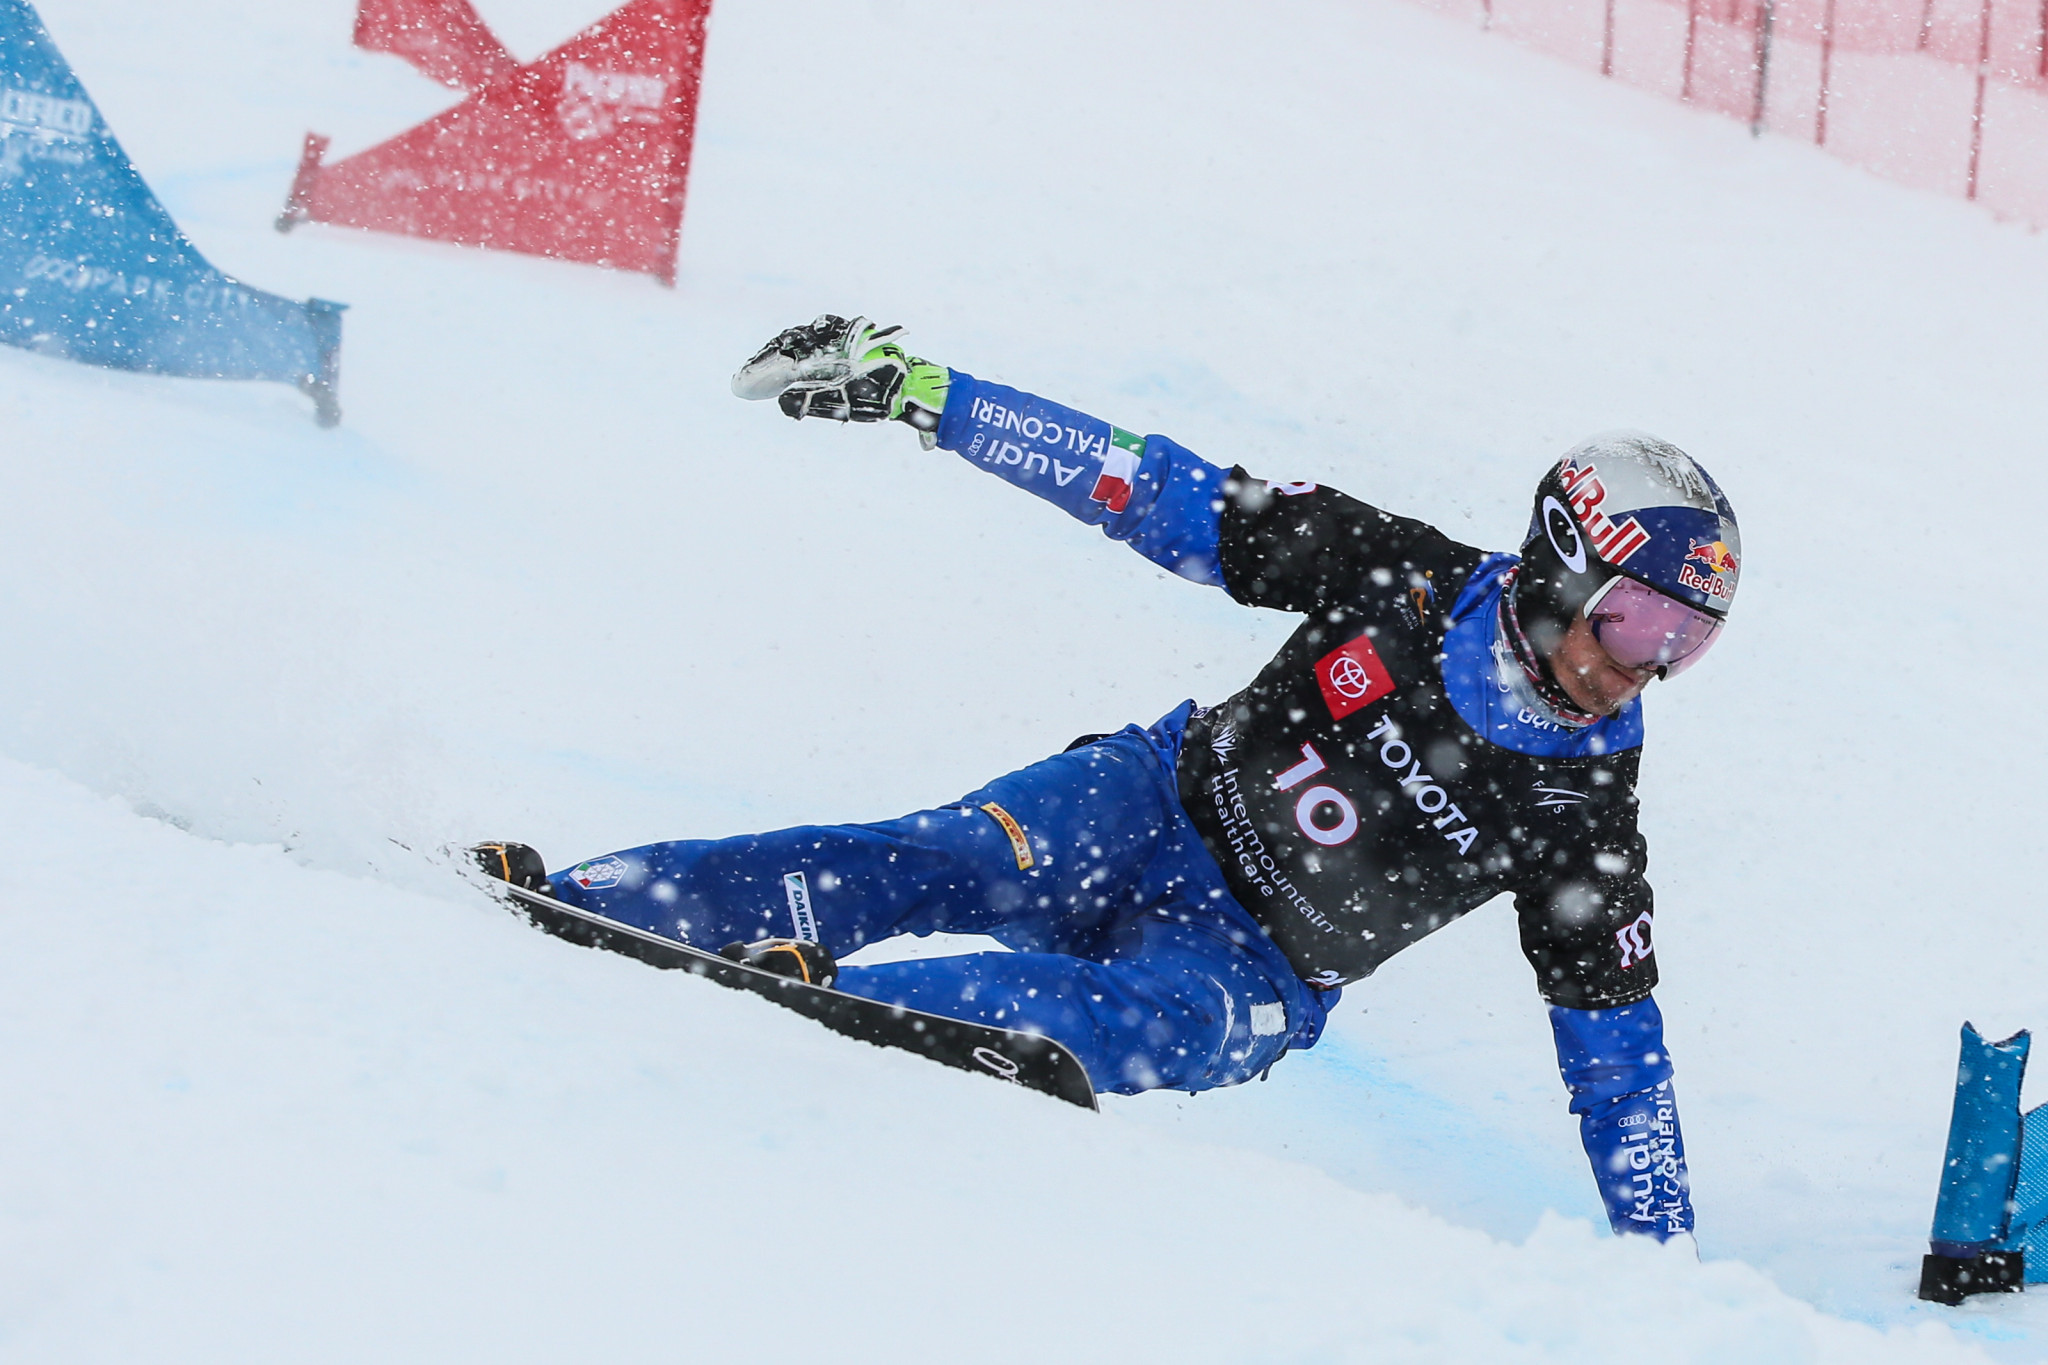 Fischnaller targets Parallel Snowboard World Cup hat-trick on home snow in Carezza